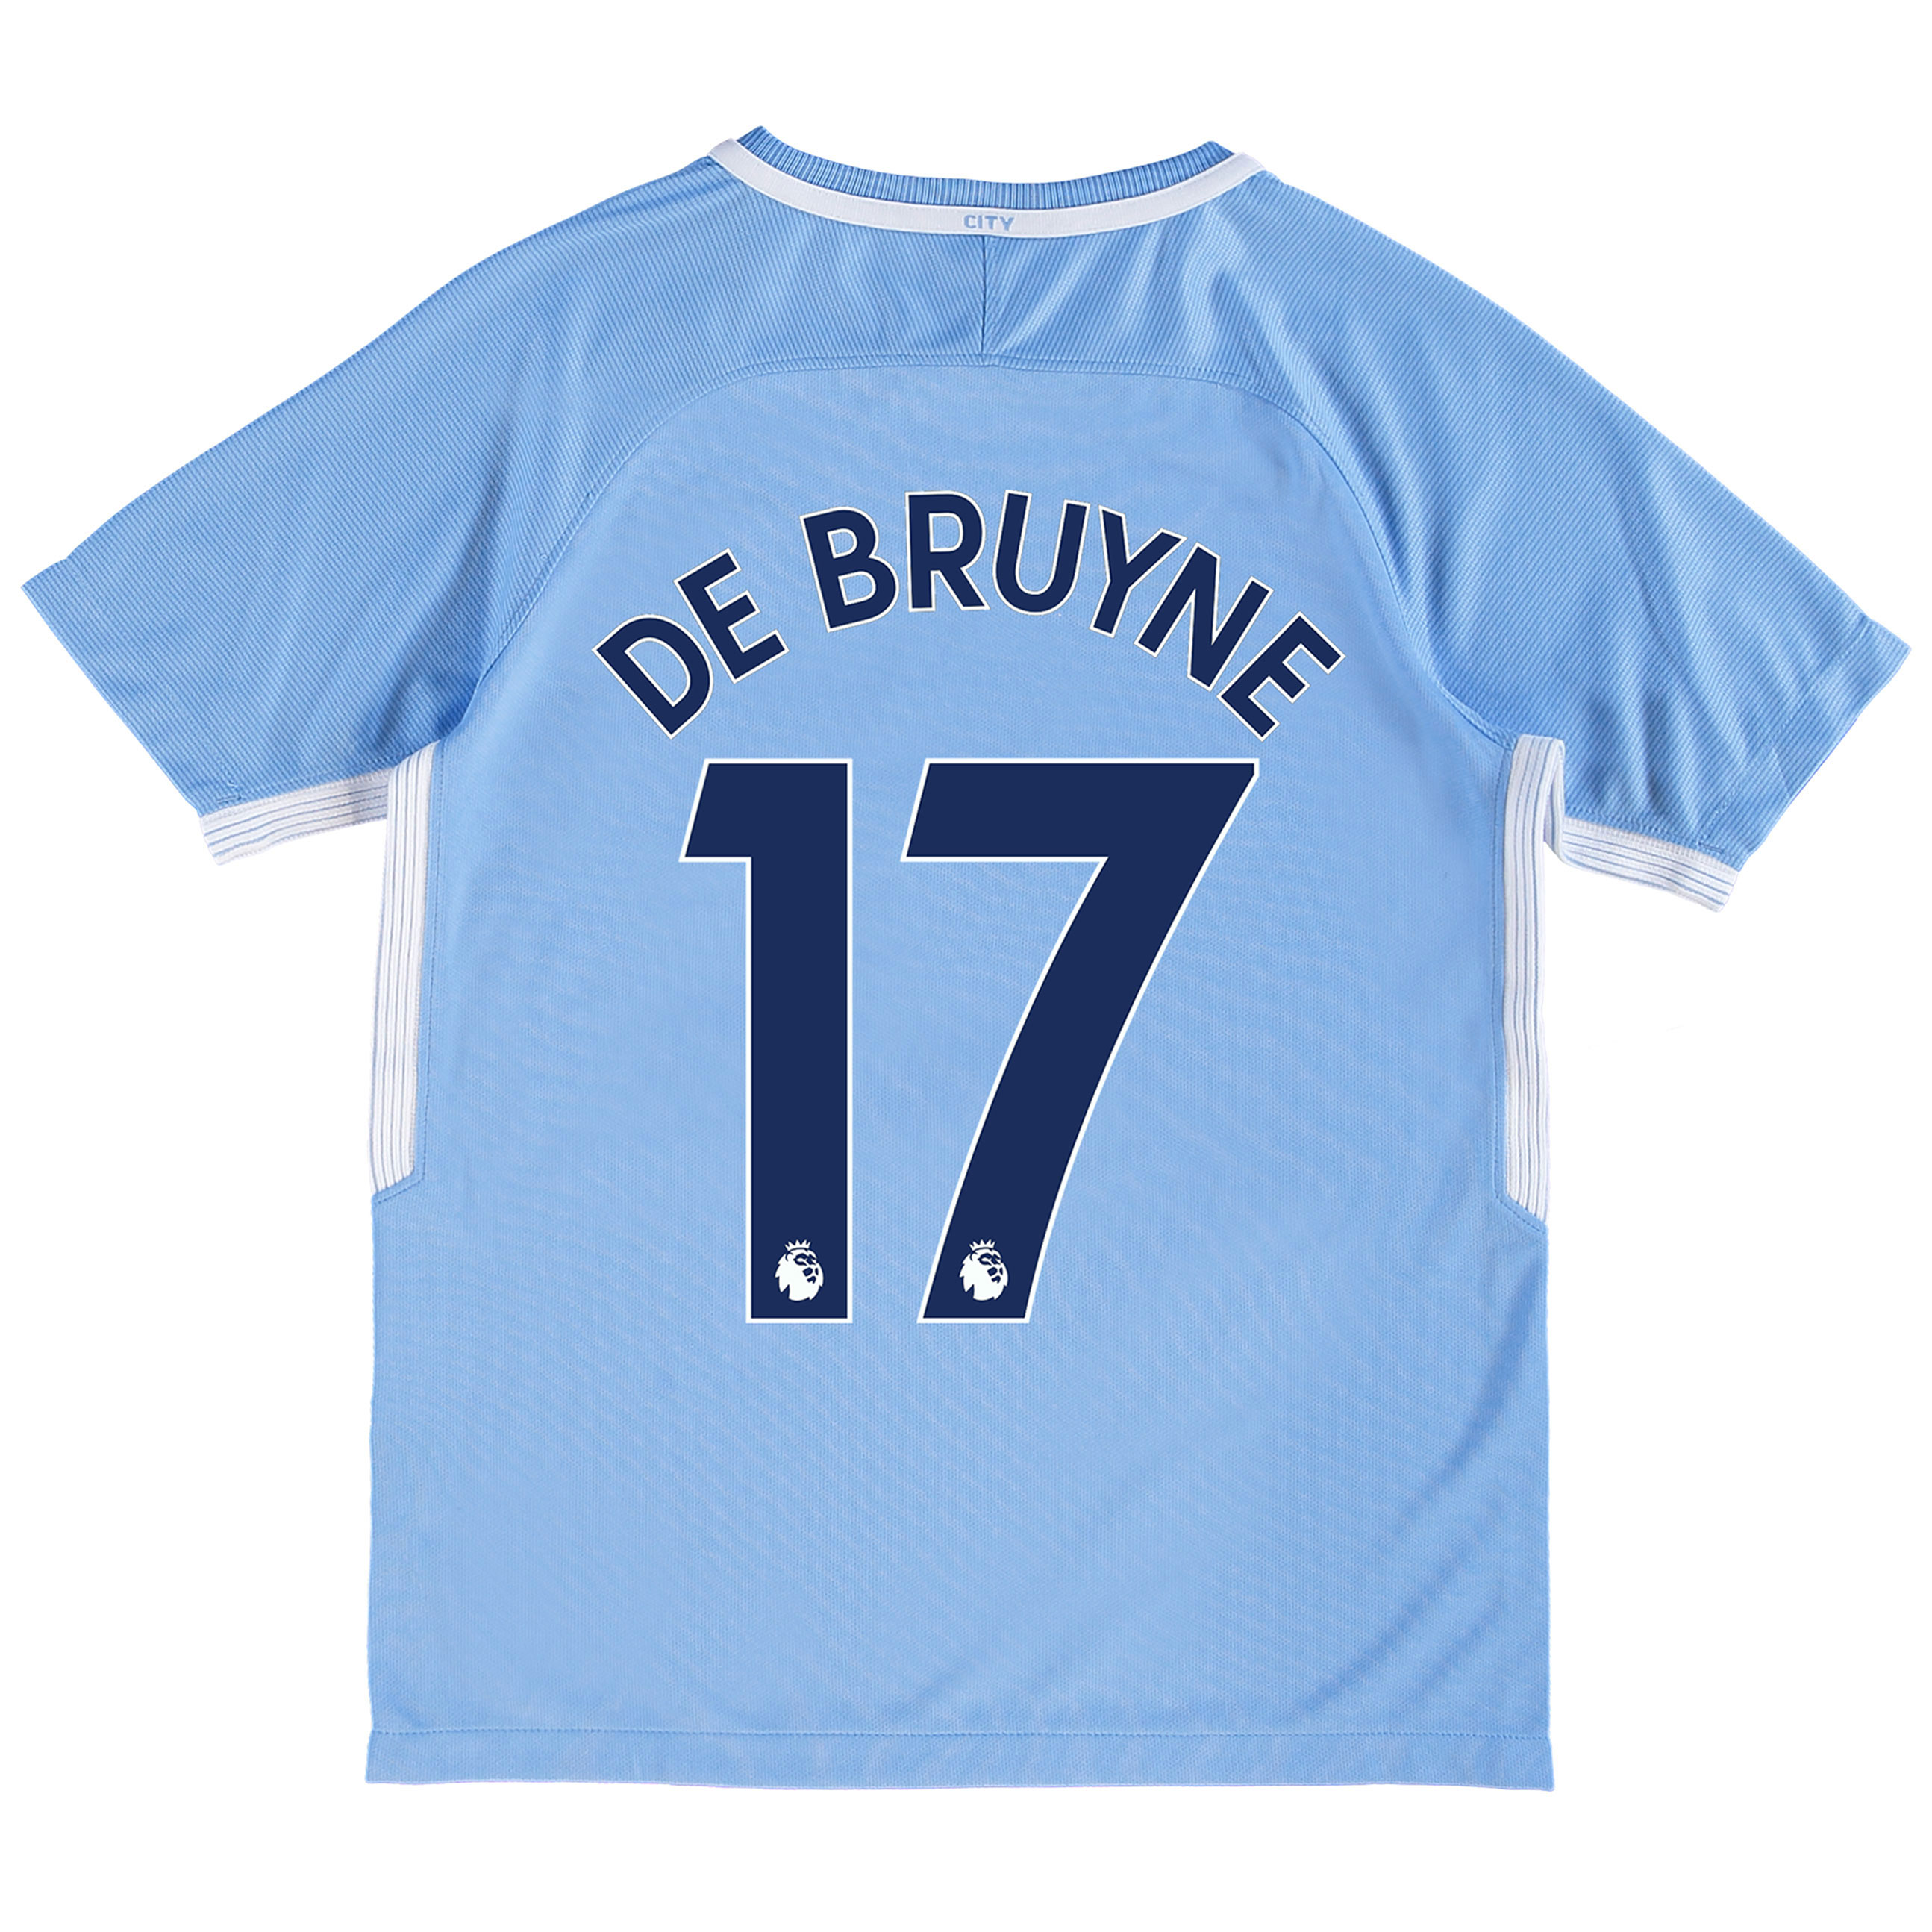 Manchester City Home Stadium Shirt 2017-18 - Kids with De Bruyne 17 pr